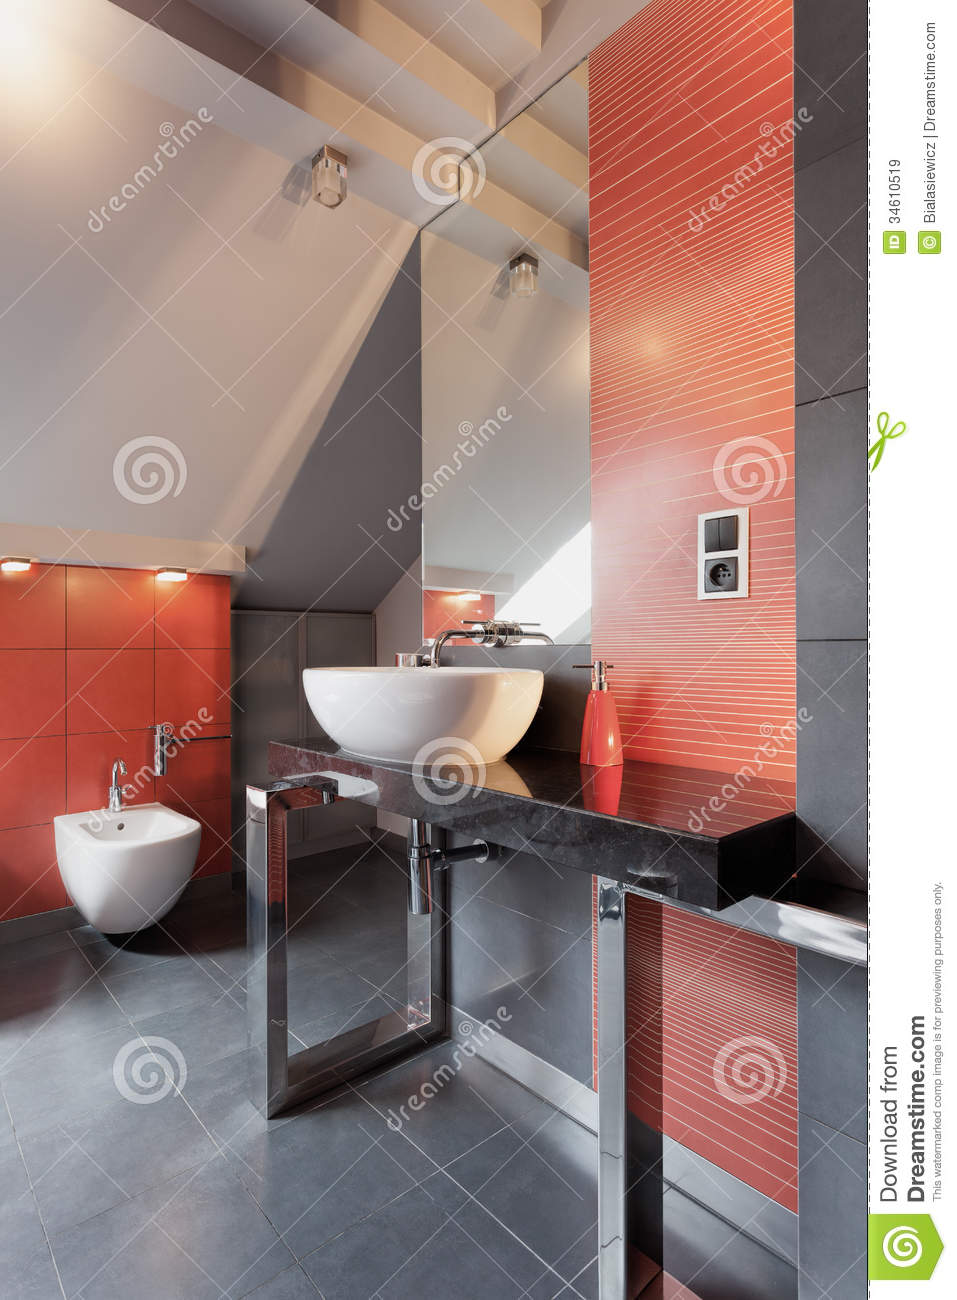 White Vessel Sink In Bathroom Stock Image  Image of light